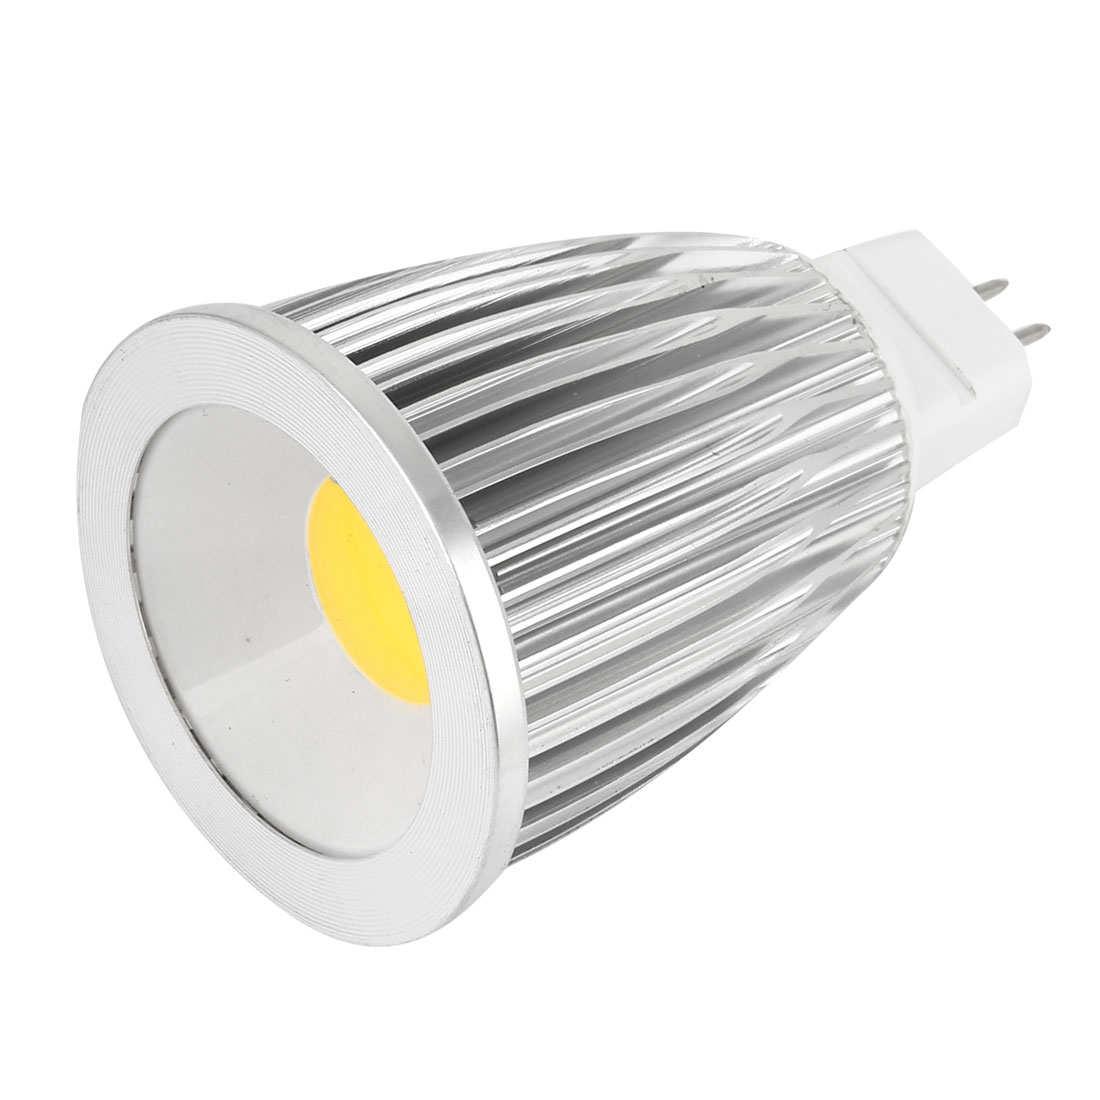 AC 12V 12W MR16 840-910LM Warm White Light COB LED Downlight Spotlight Bulb